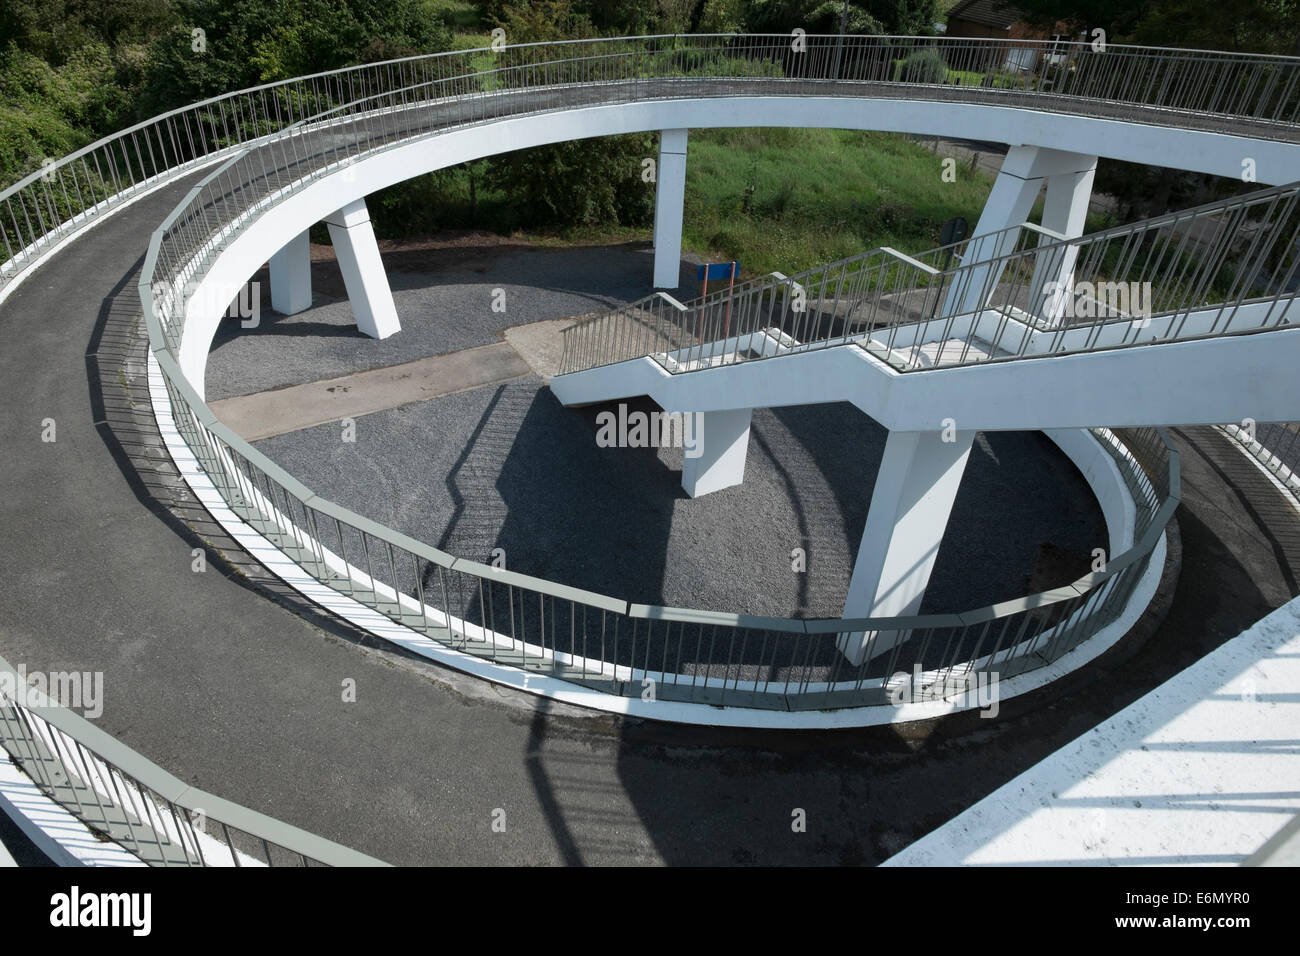 Pedestrian Walkway That Offers Either Stairs Or Ramp To Access Footbridge  At Obourg Station In Belgium